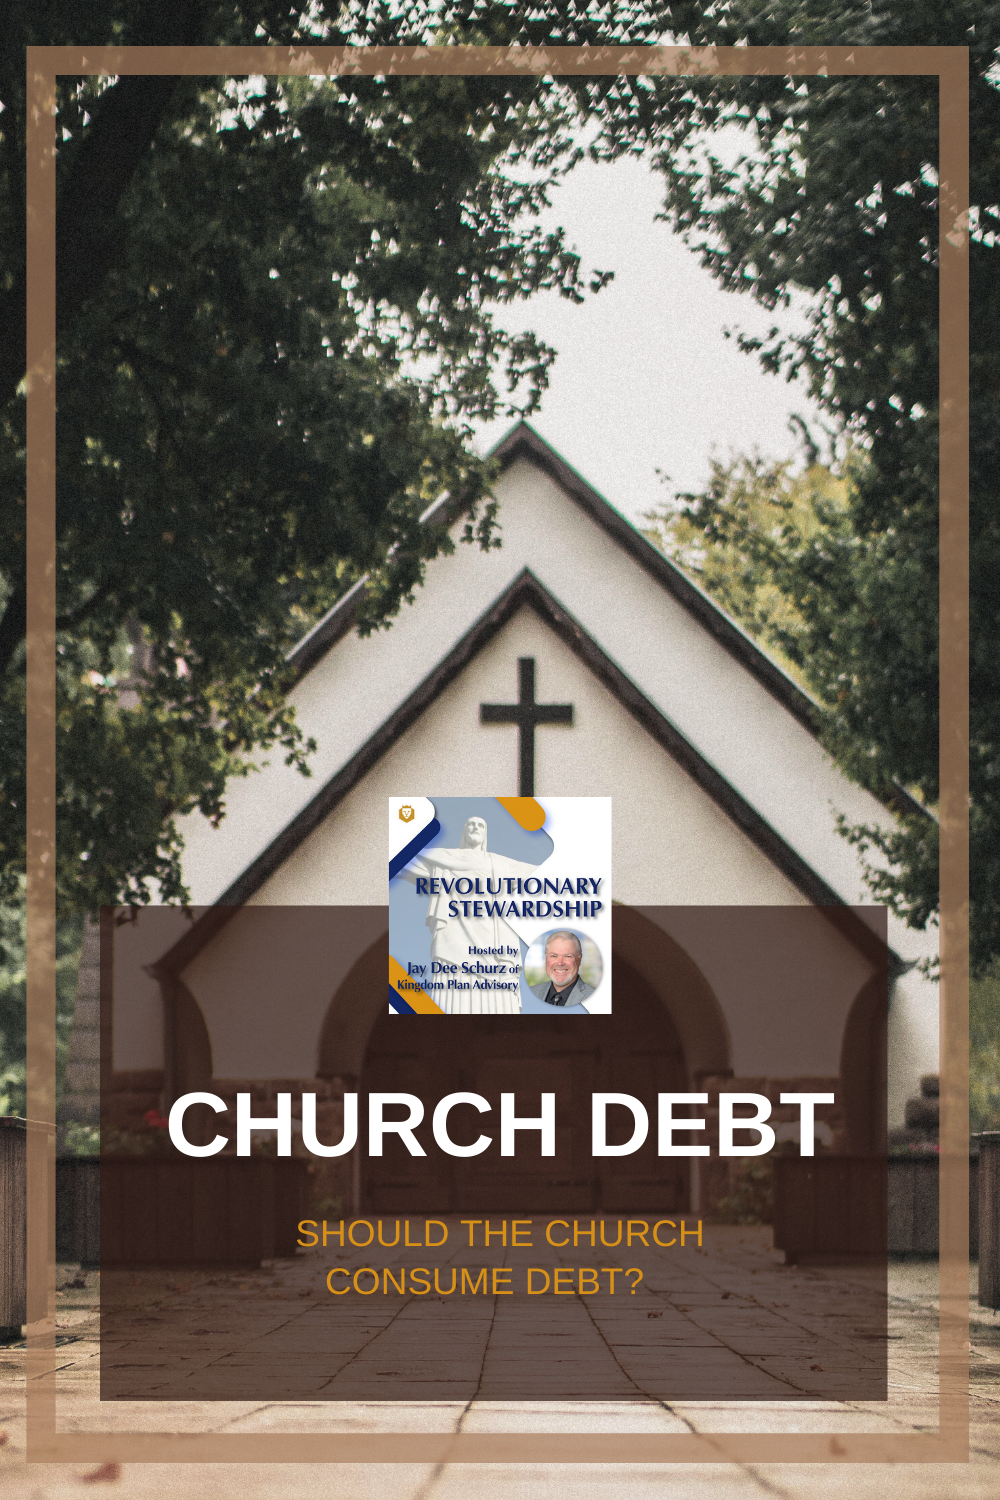 Whether or nota church should assume debt